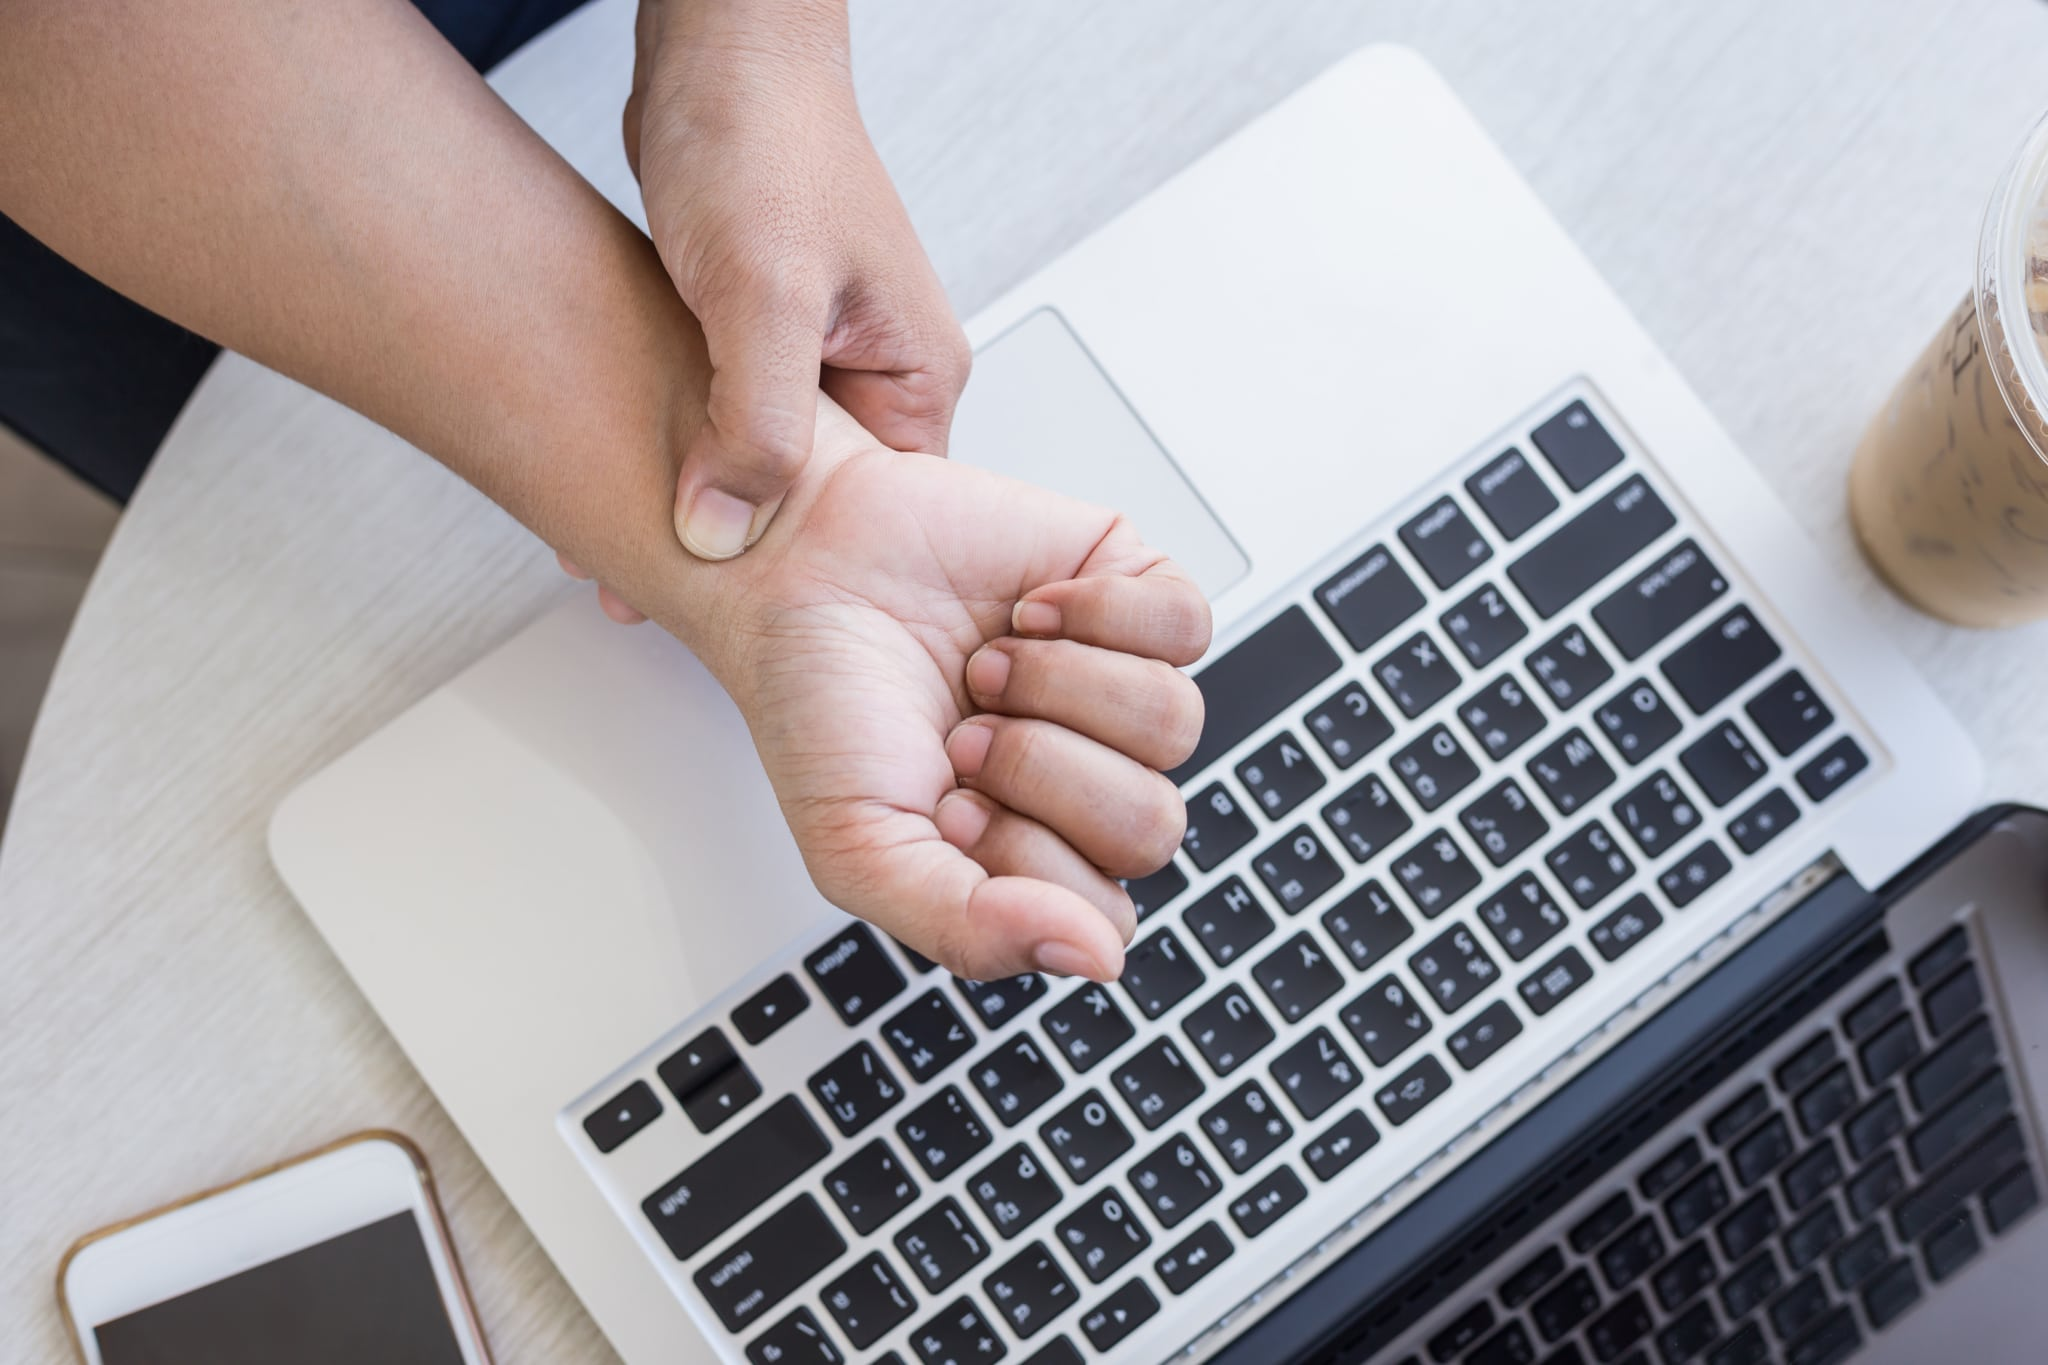 Person rubbing wrist in pain while working on computer